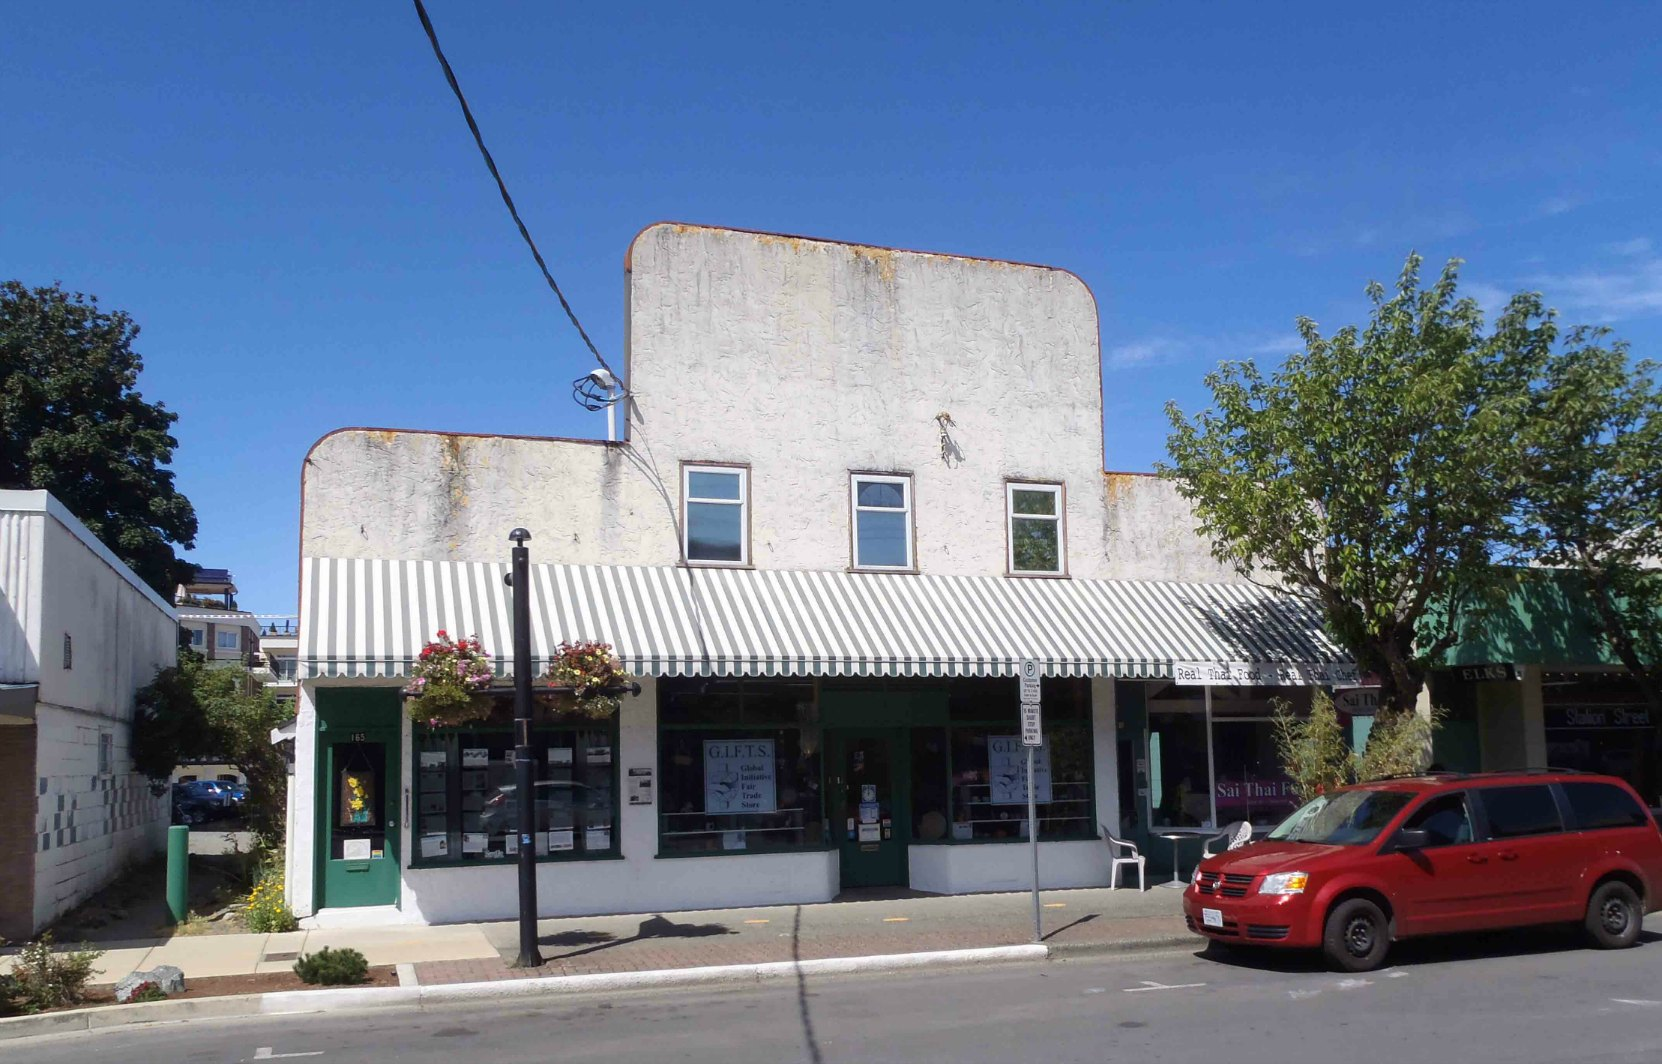 161-165 Station Street in downtown Duncan. The storefront at 165 Station Street (on the left of the photo) was occupied by Kyle's Taxi from the 1920s to the 1950s.